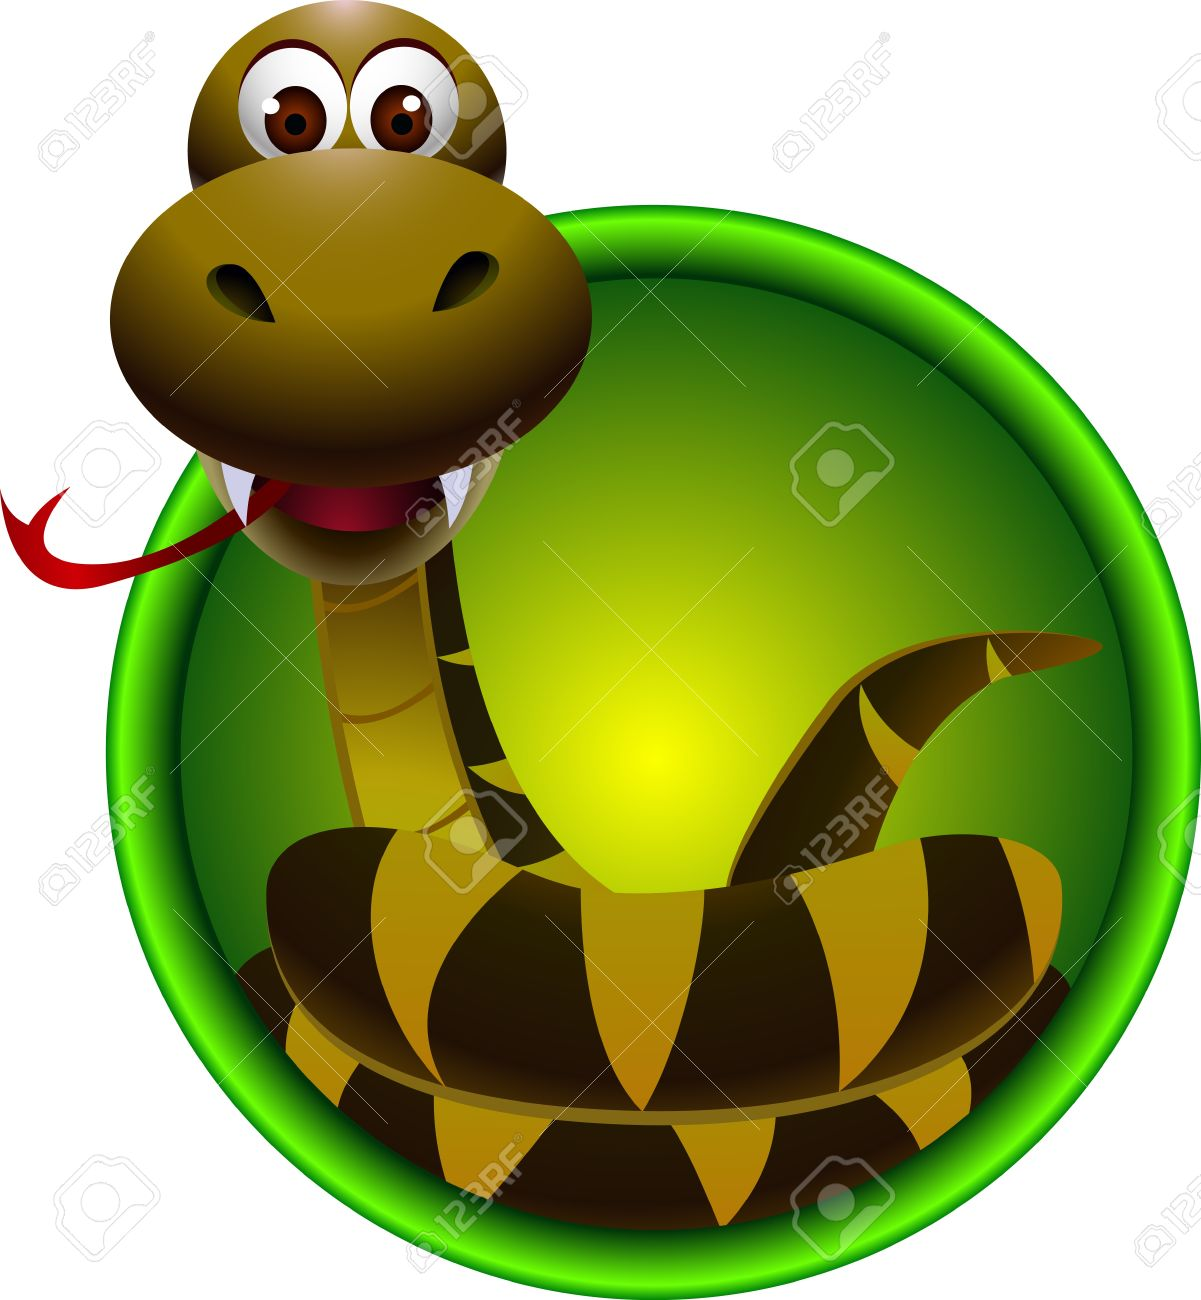 cute snake cartoon Stock Vector - 15359887